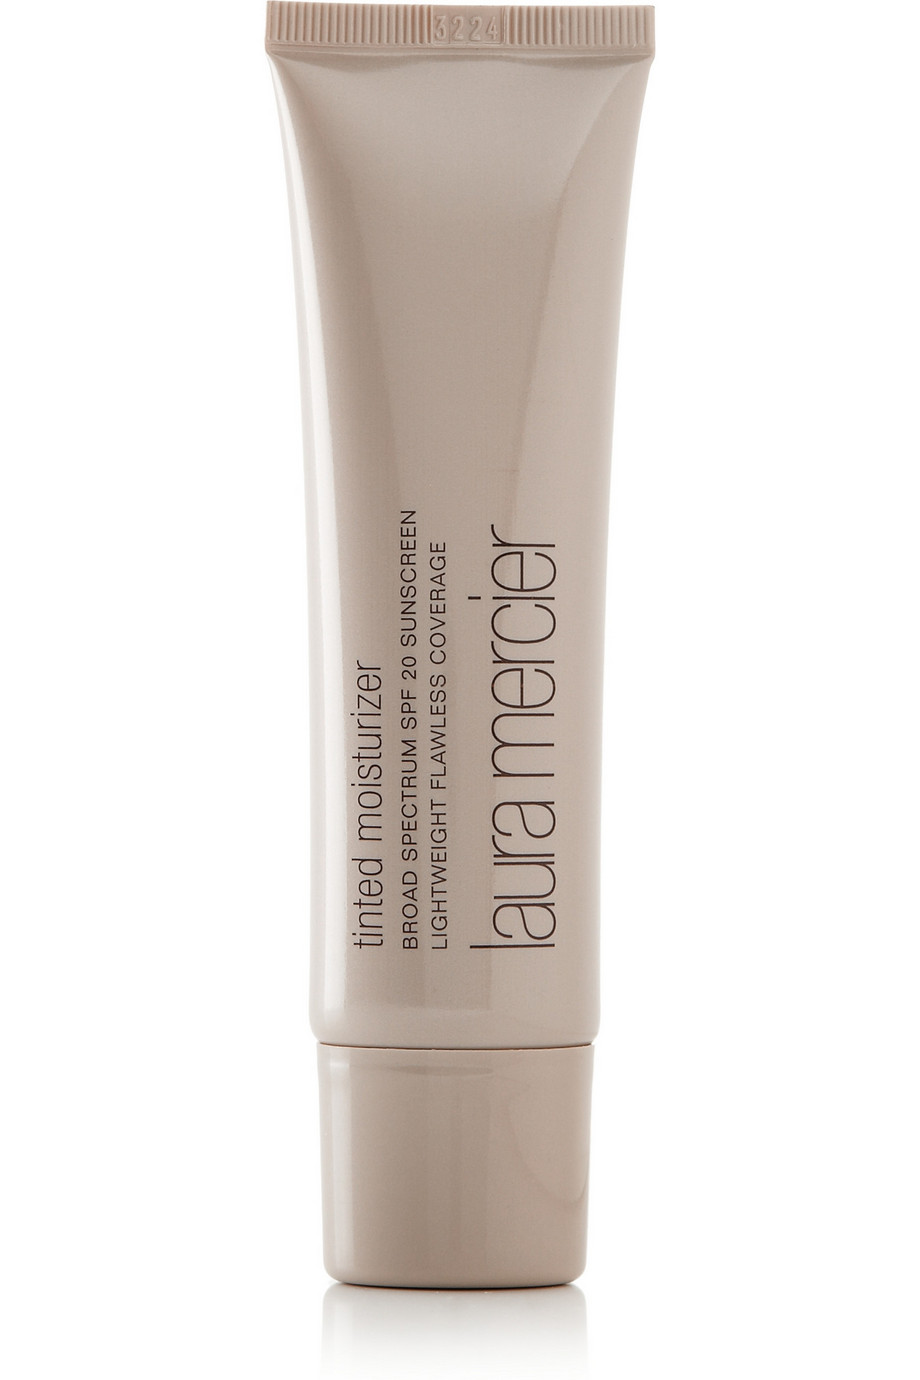 Laura Mercier Tinted Moisturizer Spf20 - Bisque, 40ml